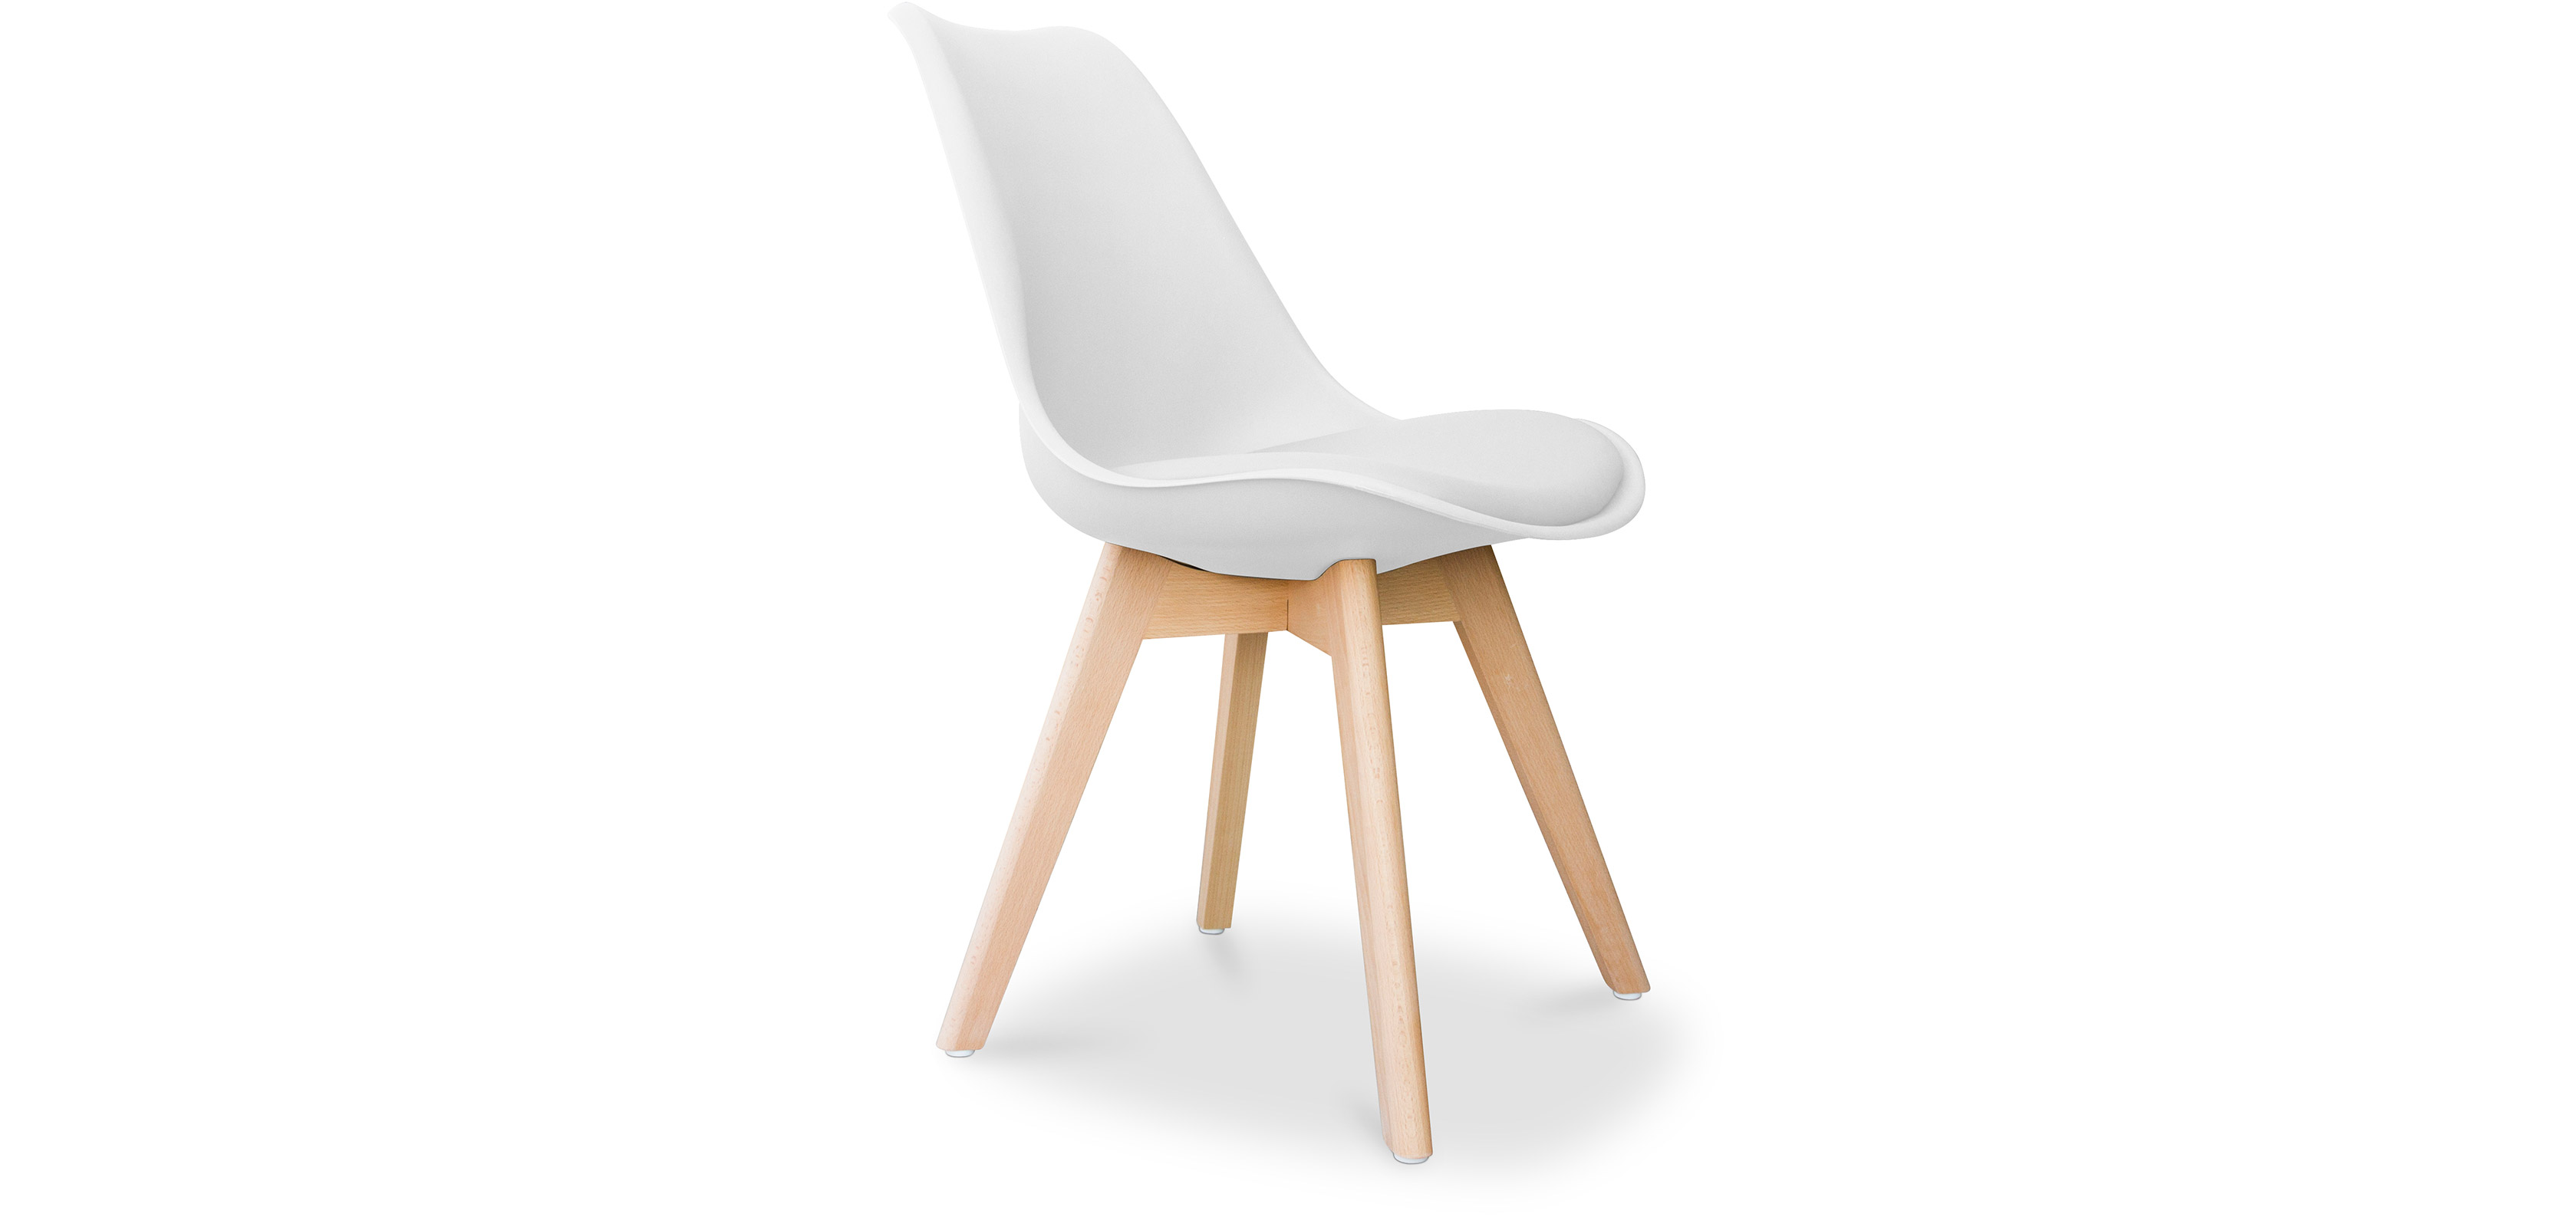 Scandinavian Style Chair Dsw Scandinavian Design Chair With Cushion Charles Eames